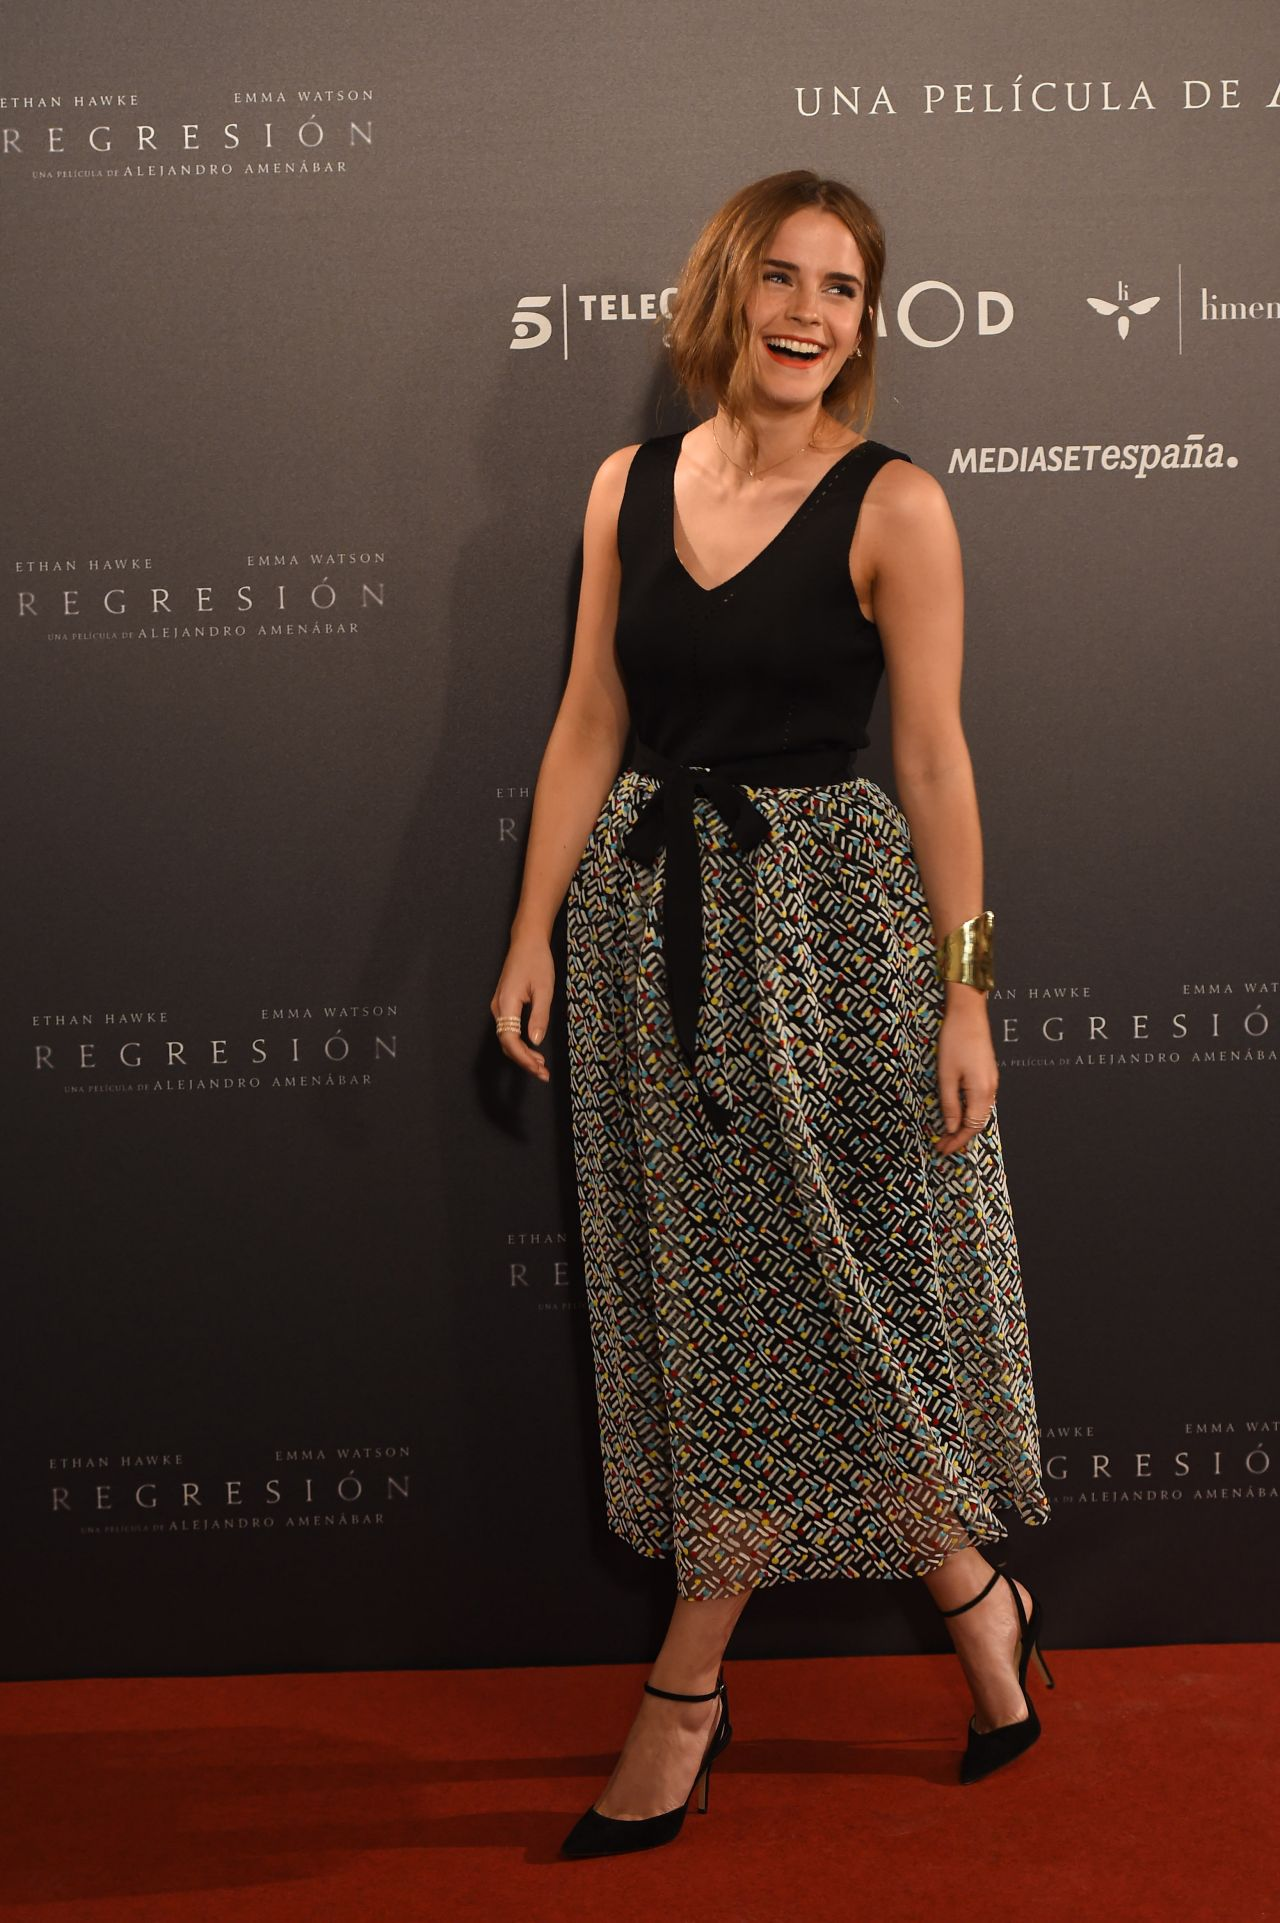 emma-watson-regression-photocall-at-villamagna-hotel-in-madrid_9